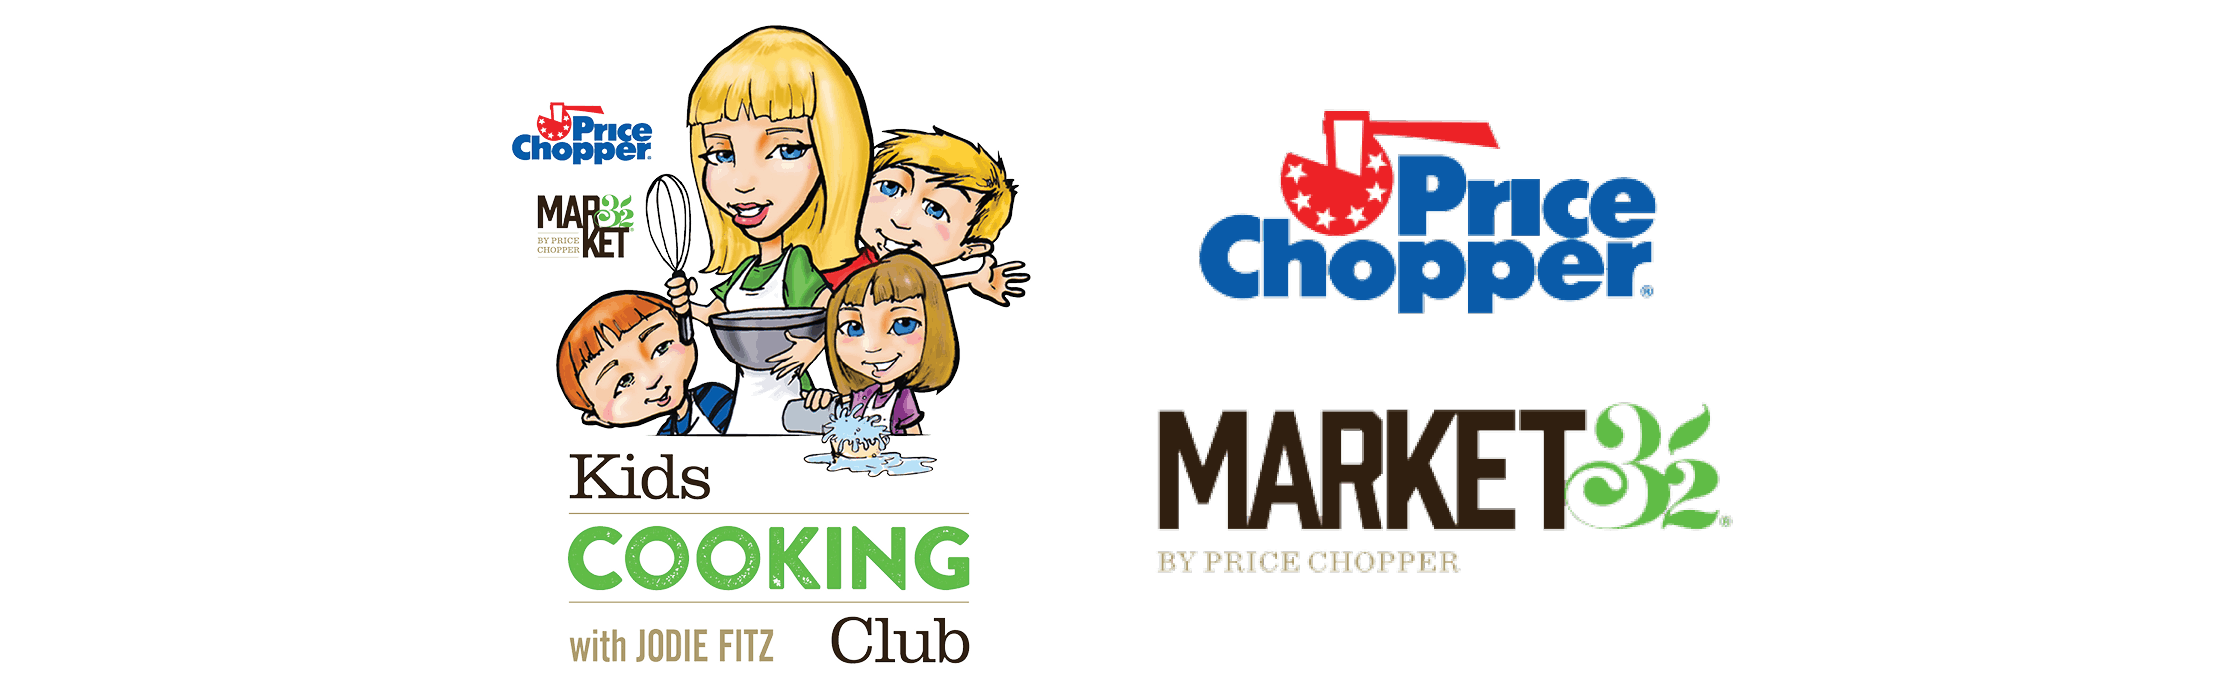 Kids Cooking Club logo next to Price Chopper Market 32 logo